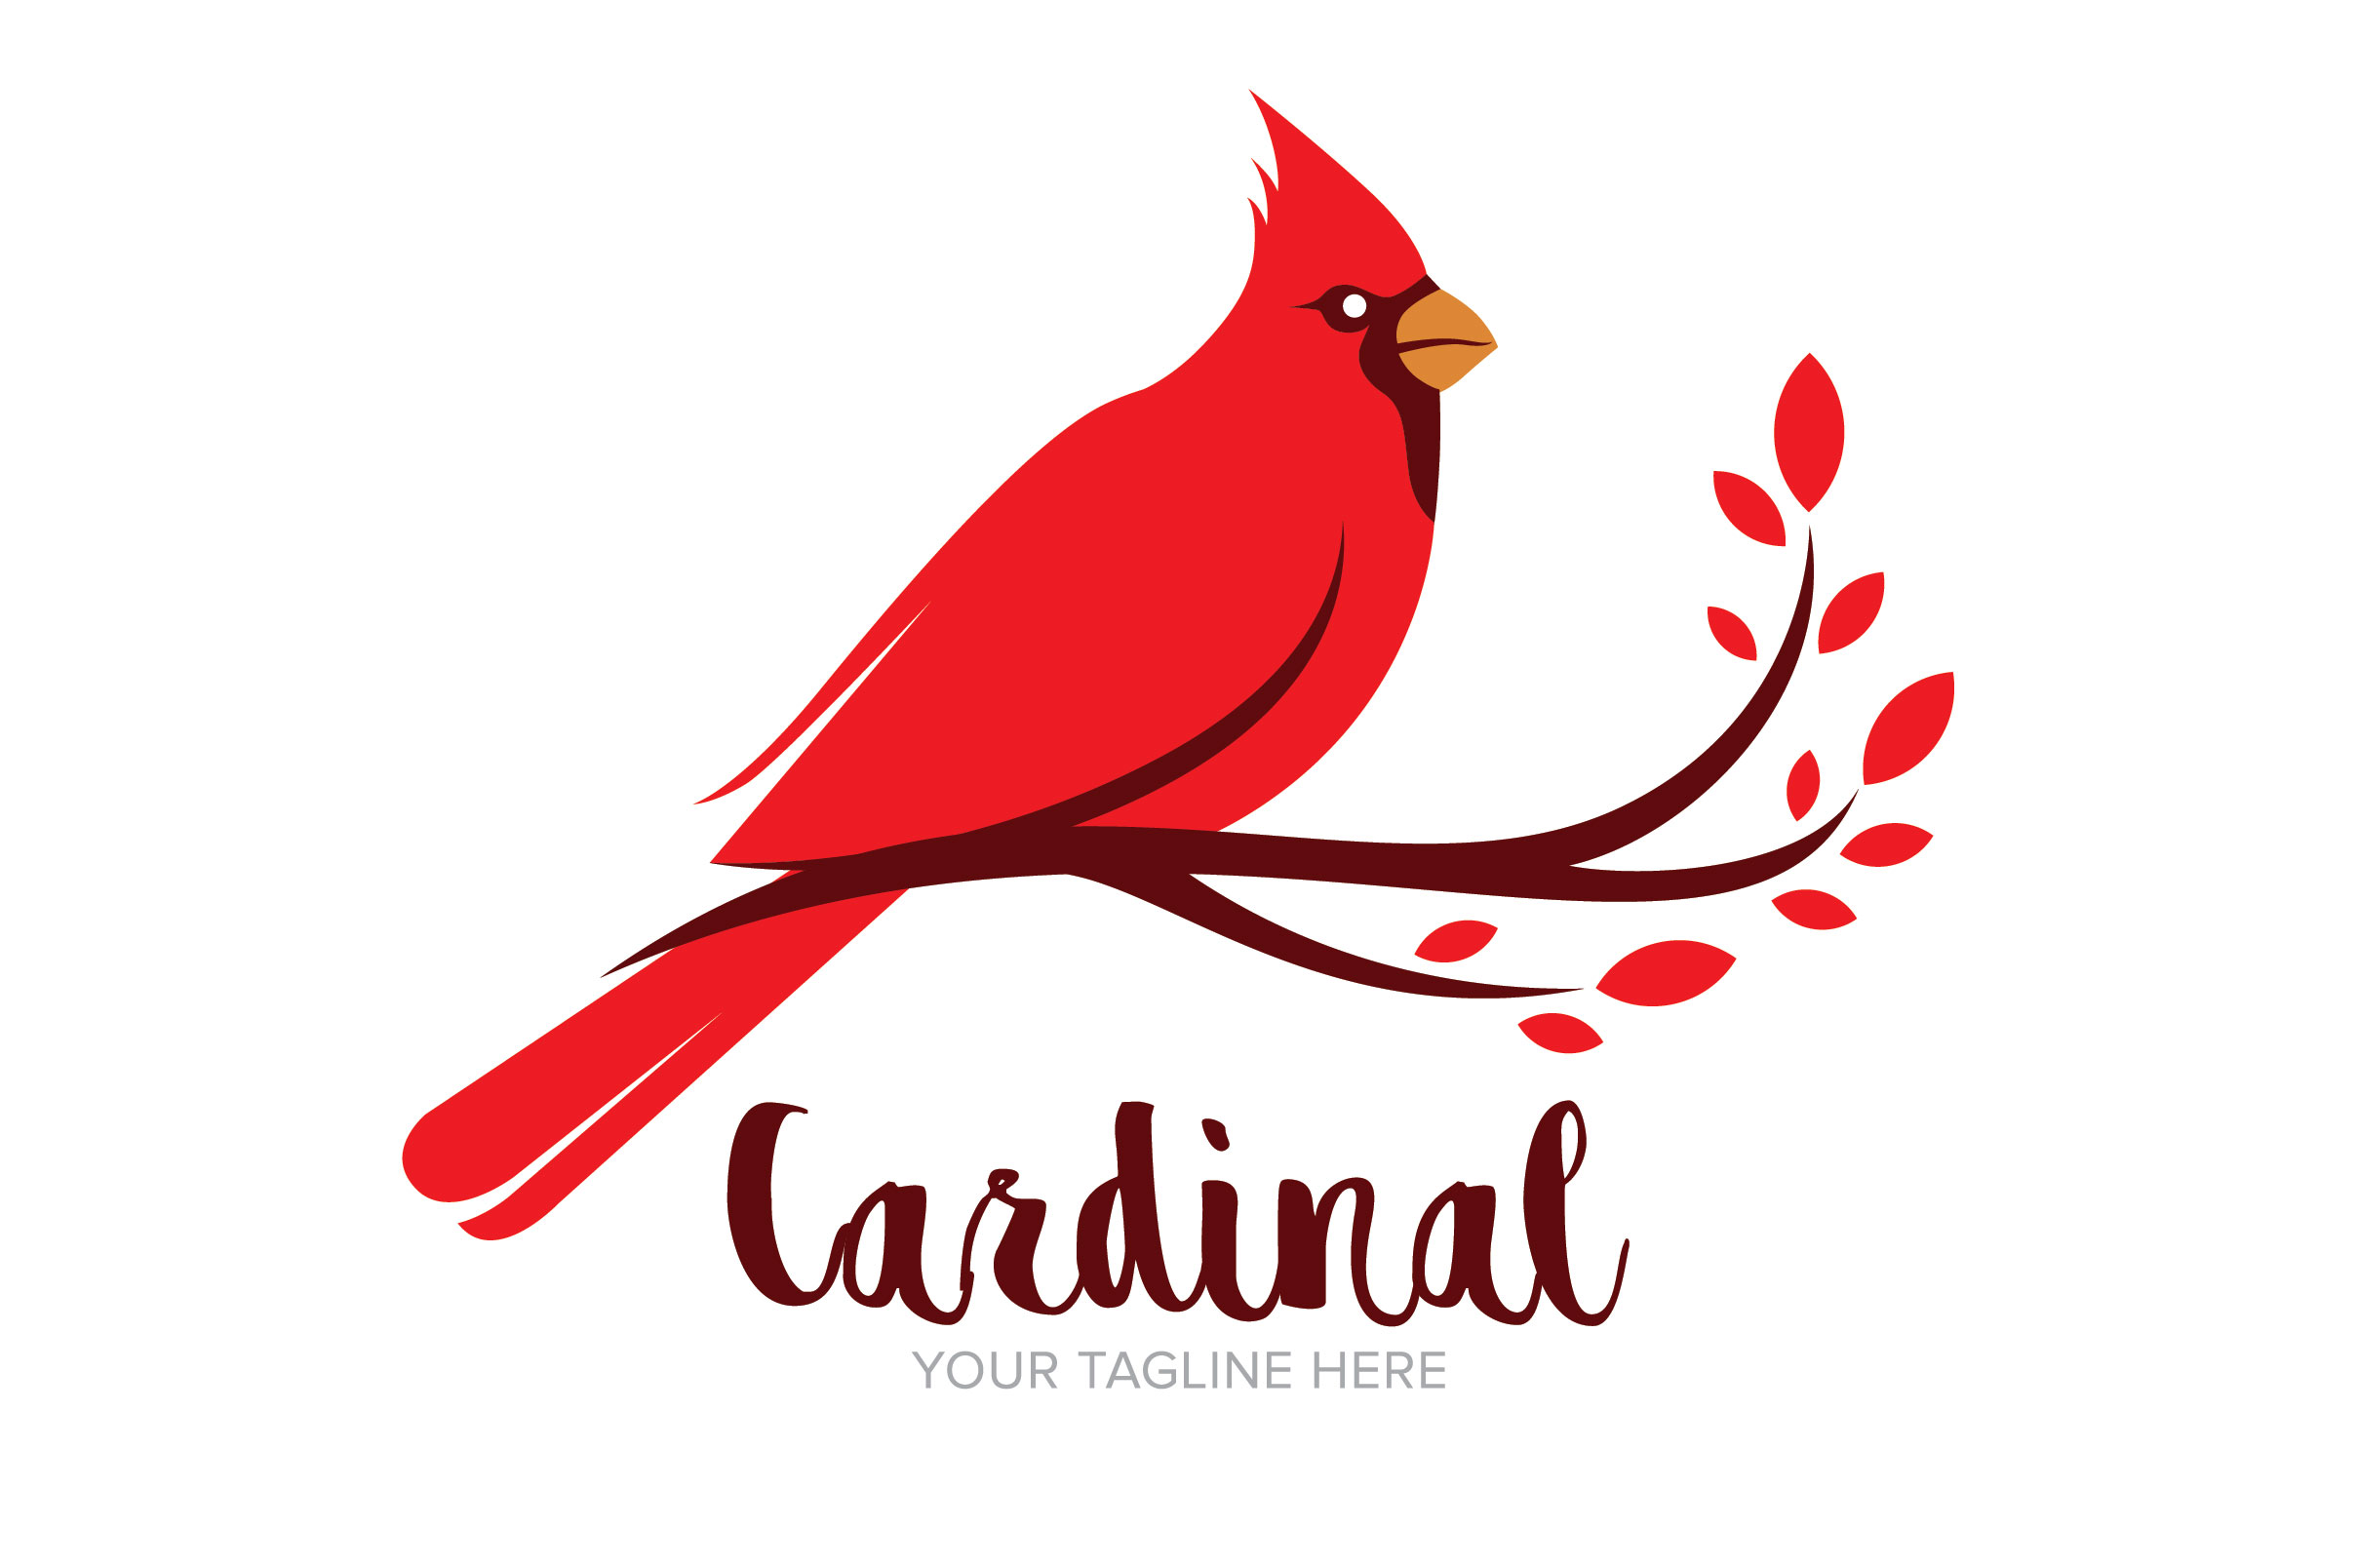 Download Free Cardinal Bird Logo Design Graphic By Nuranitalutfiana92 for Cricut Explore, Silhouette and other cutting machines.